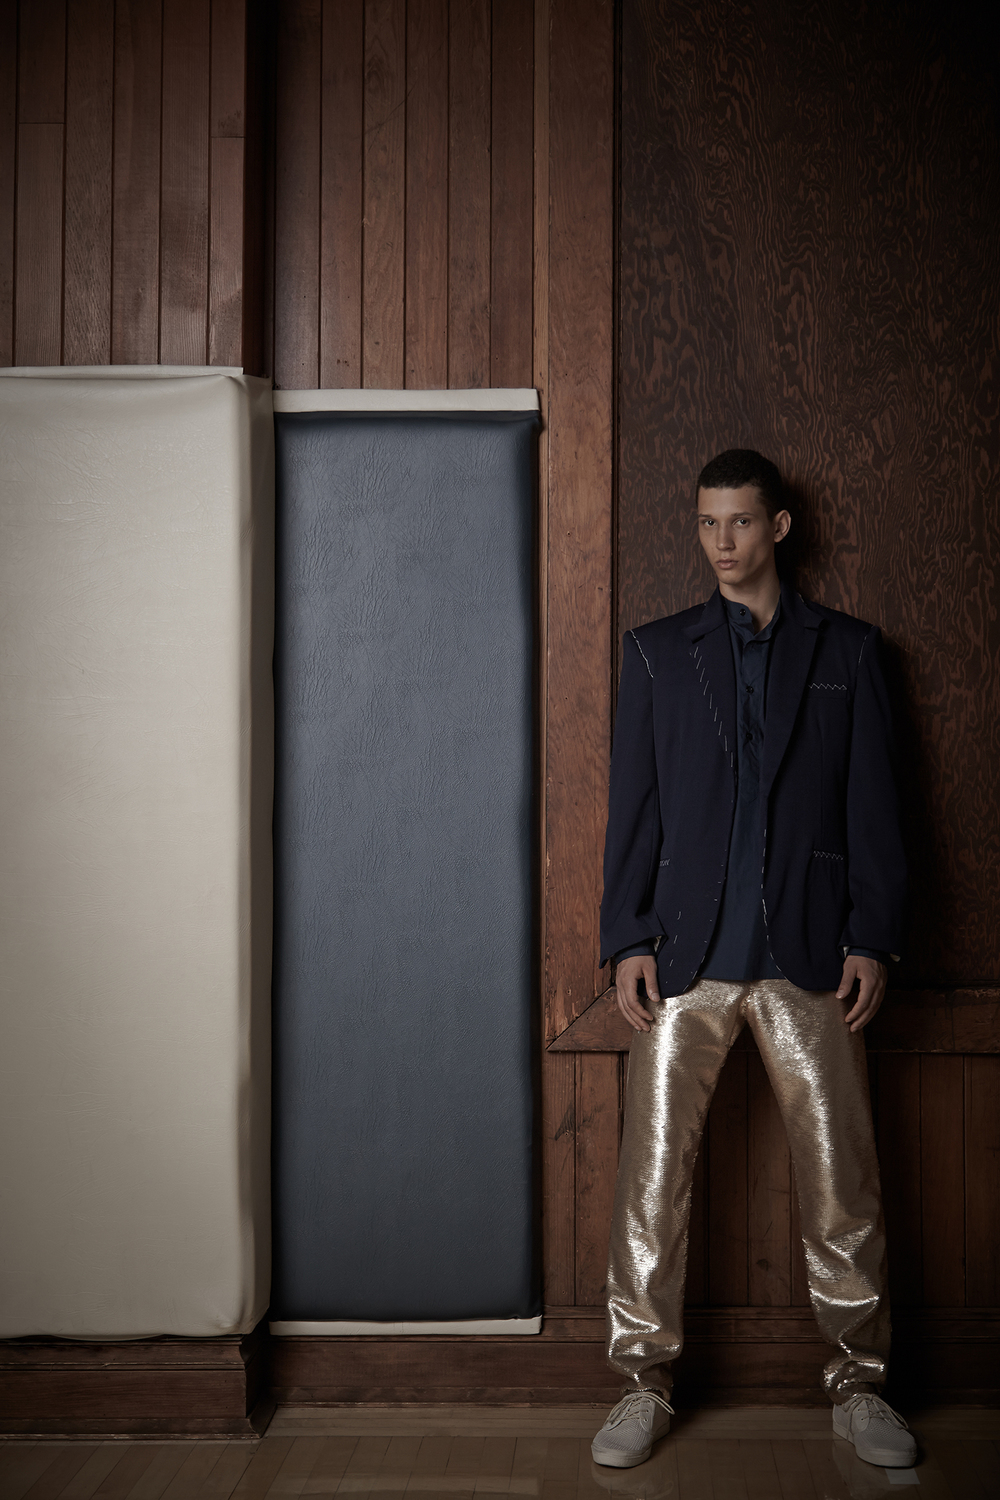 Tailored Jacket sample by Cris Applegate. Shirt by Antonio Lunas, Alumnus, 2012 BFA Menswear Design. Sequin Pant by Jeremy Vu, BFA Menswear Design.